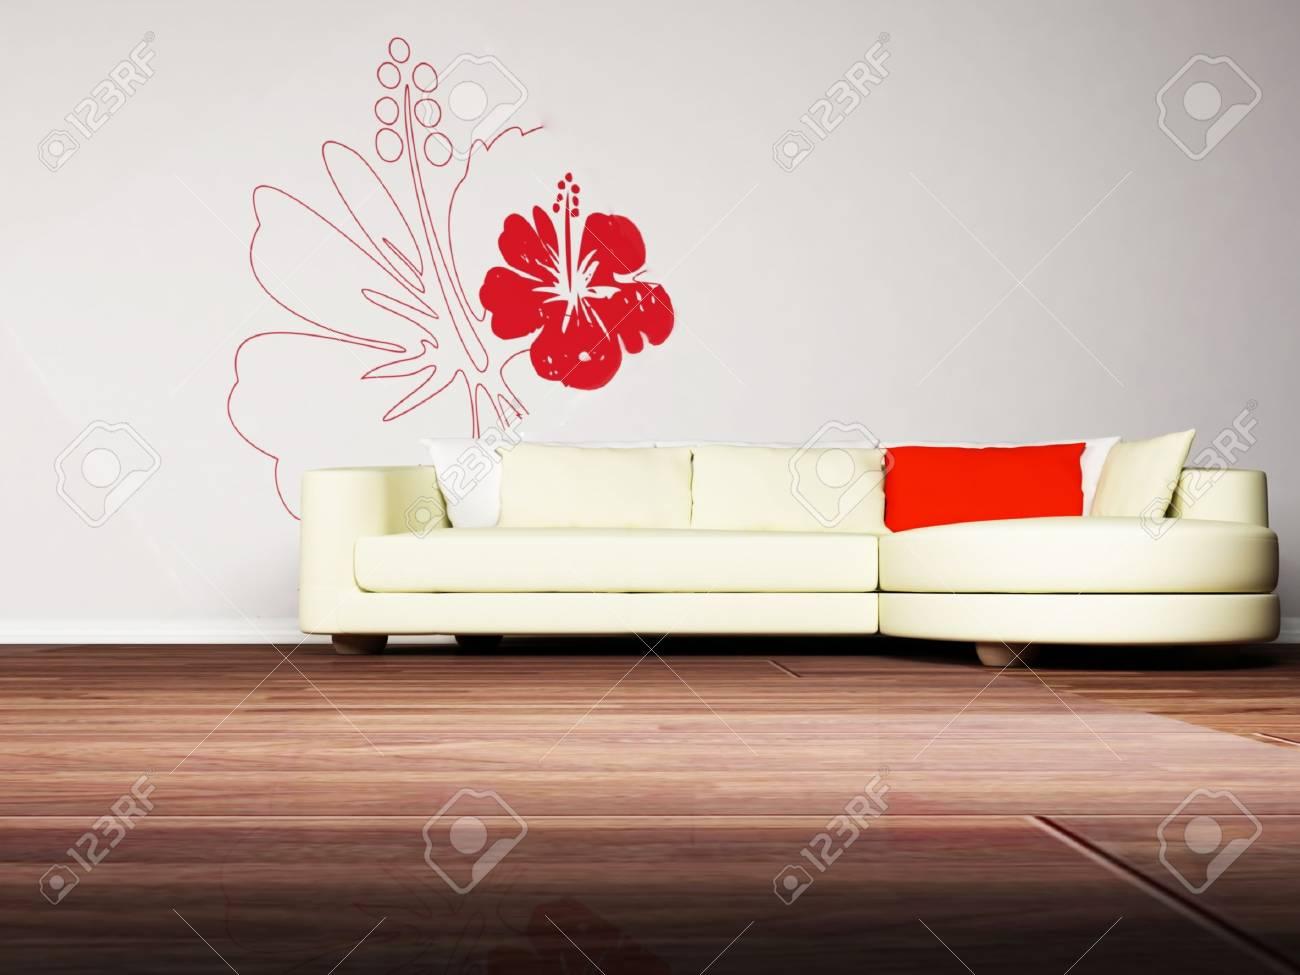 Modern  interior design of living room with a  sofa on the interesting background Stock Photo - 12975094